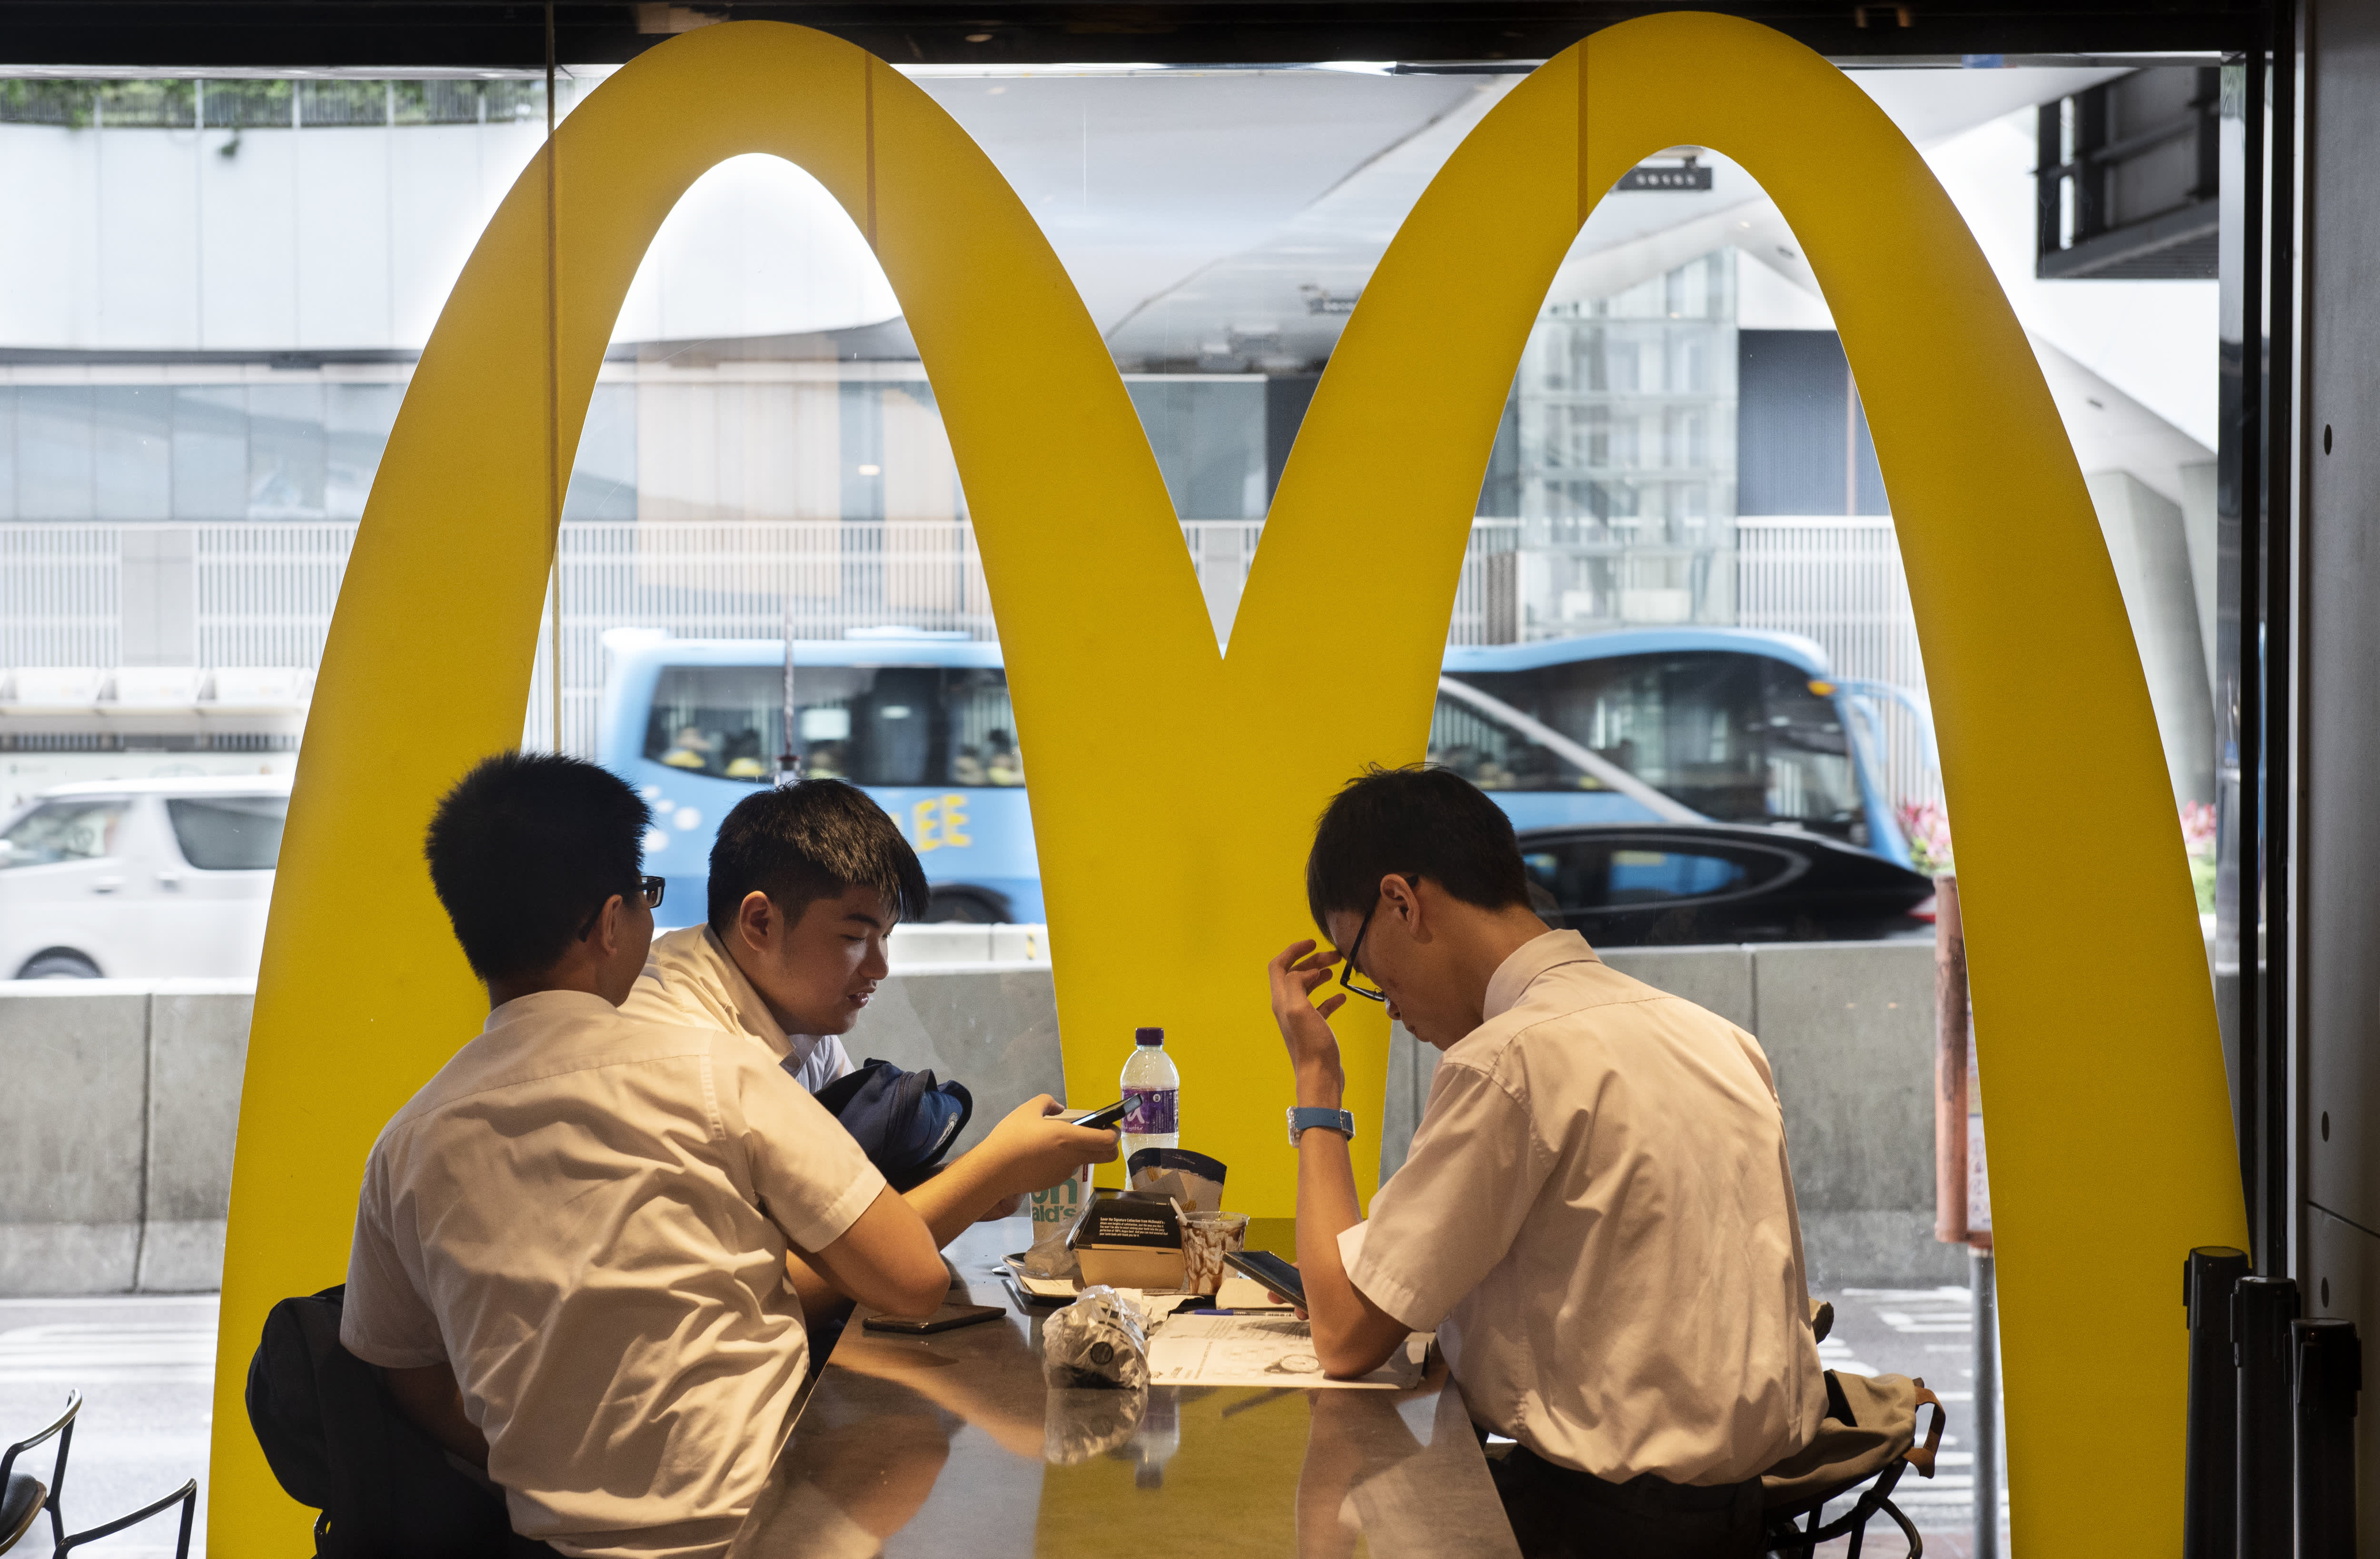 McDonald's slides after JP Morgan analyst says chain's earnings seem 'softer' than expected